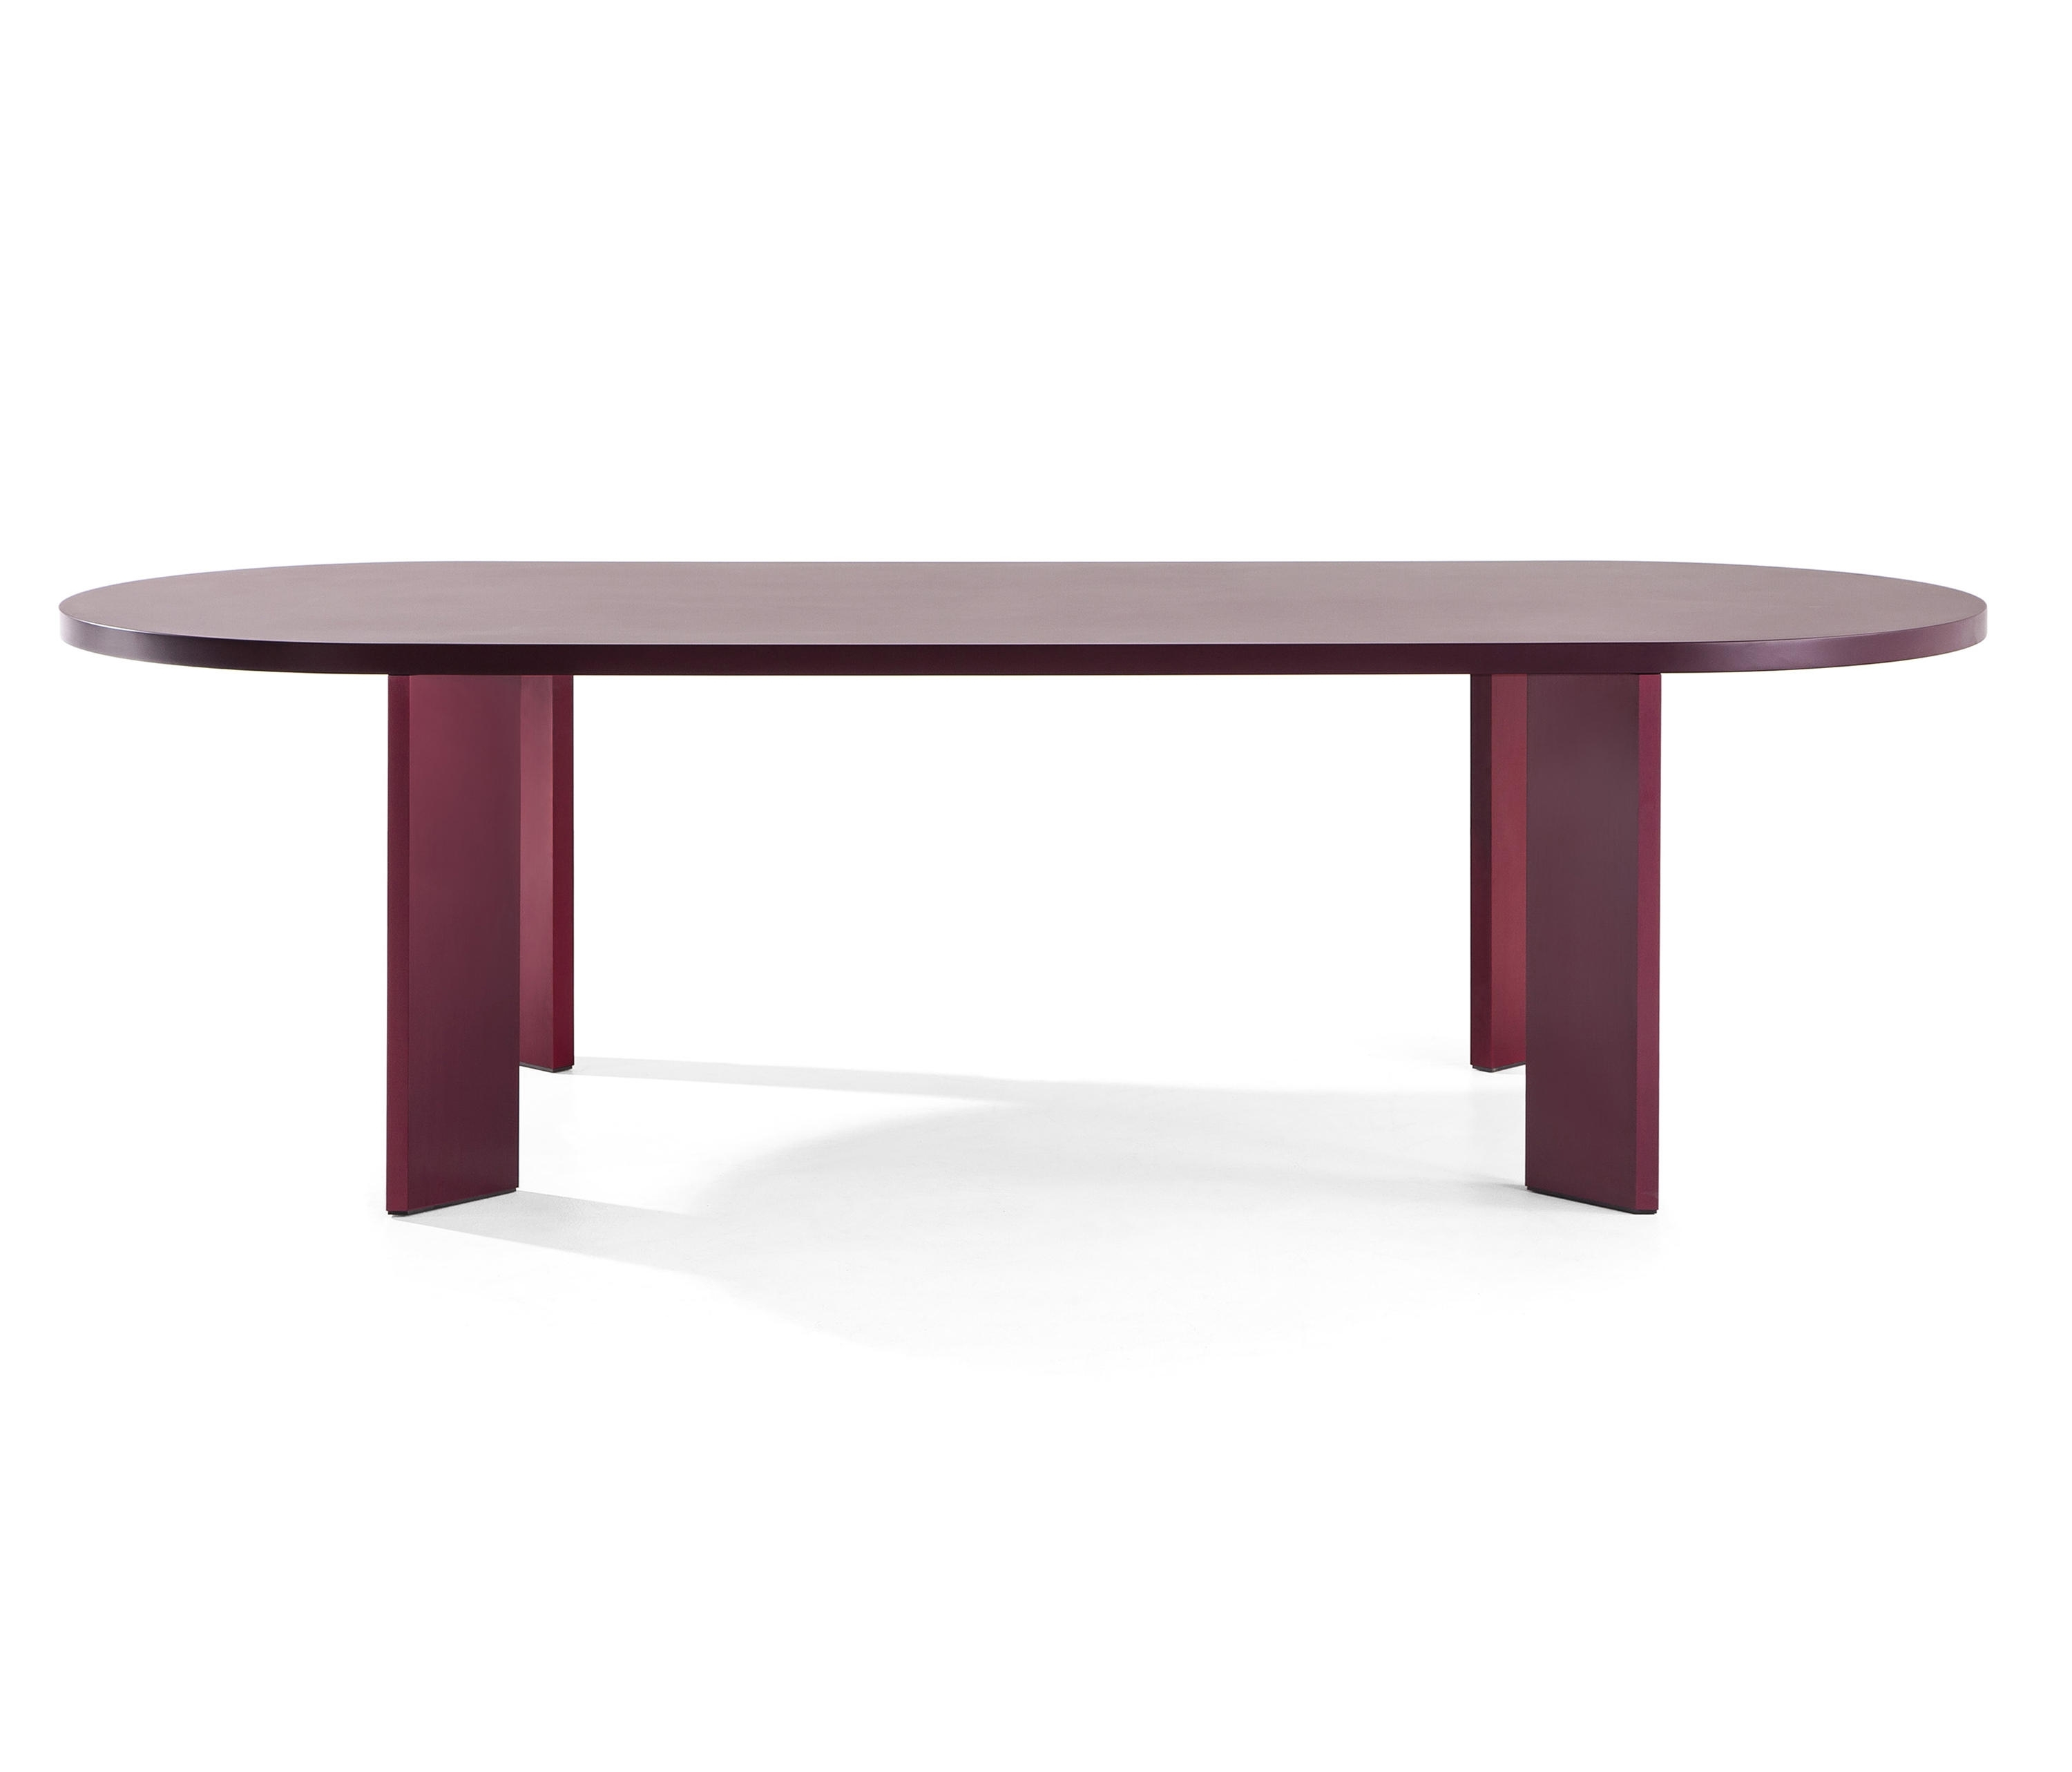 Architonic Regarding Palazzo Rectangle Dining Tables (Gallery 12 of 25)